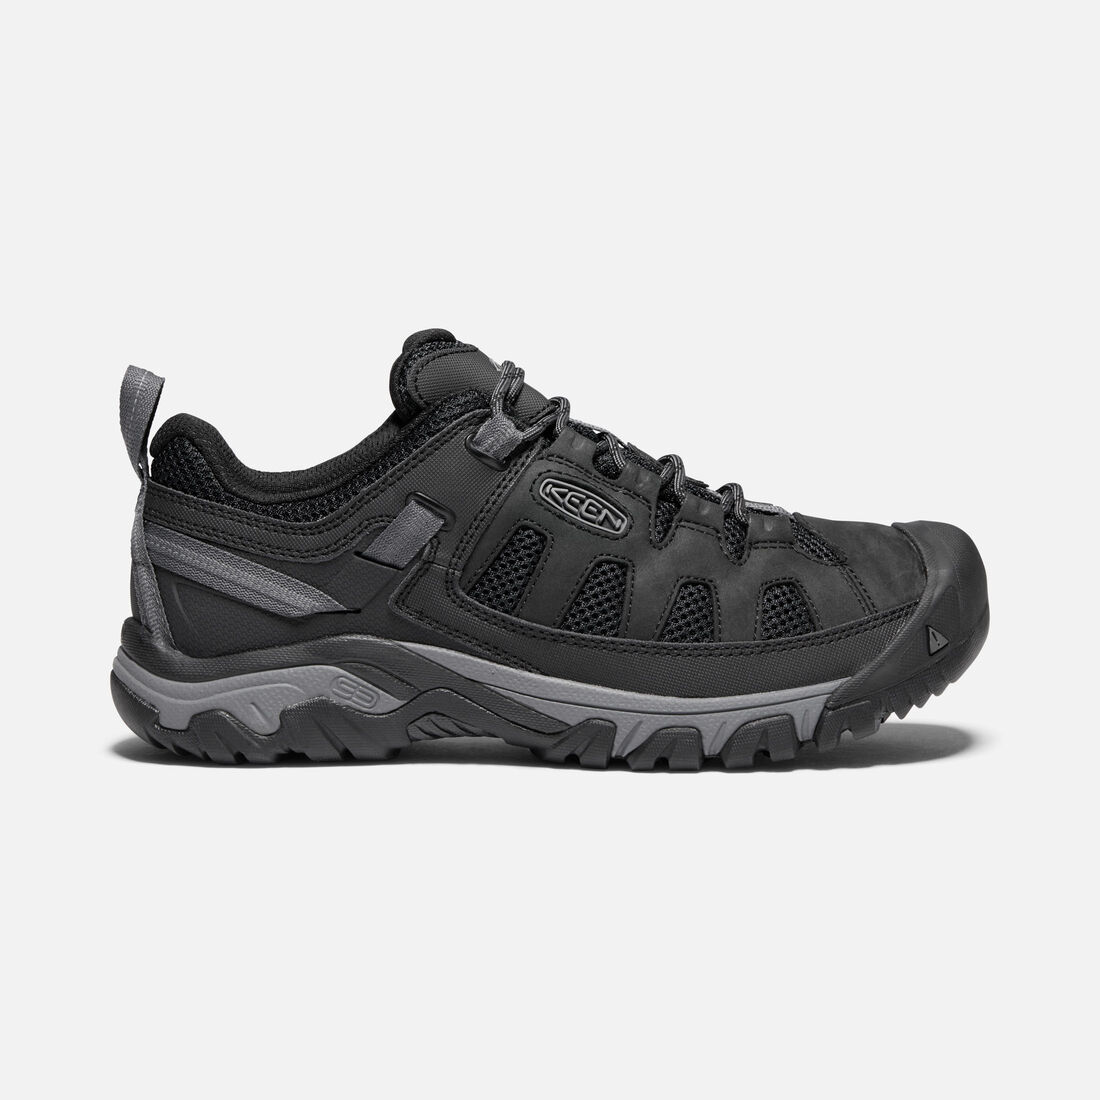 a262ee2f2fa9b Men's Targhee Vent - Vented Hiking Shoes | KEEN Footwear